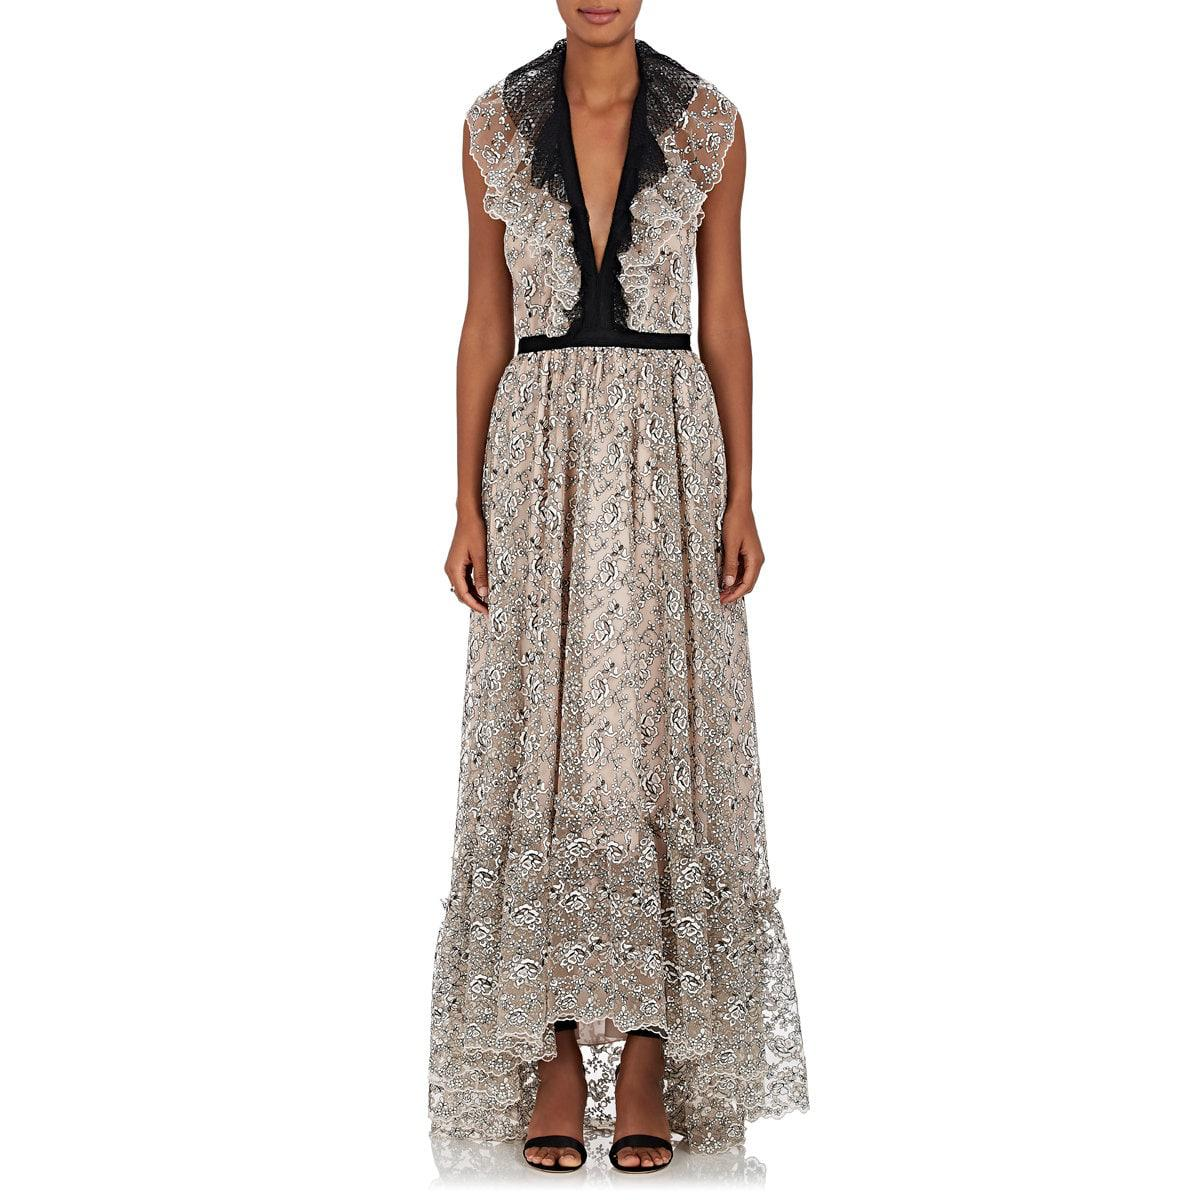 Cheap And Nice Womens Embellished Crepe Maxi Dress Philosophy di Lorenzo Serafini Quality For Sale Free Shipping Exclusive Sale Online Cheap Sale Release Dates Sale Wiki KolInPfvg